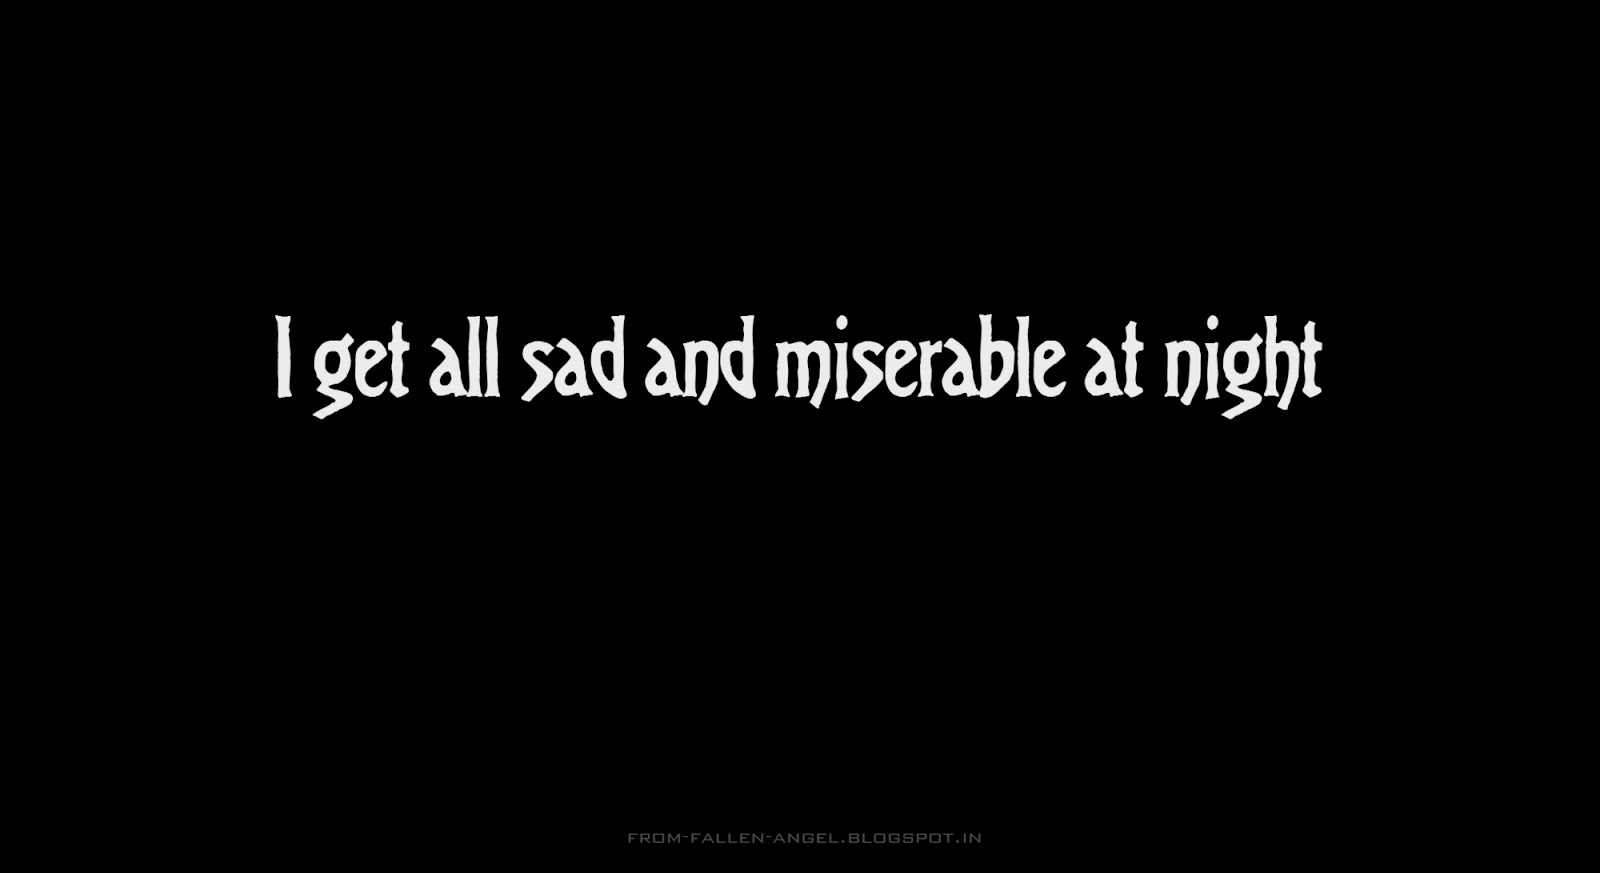 I get all sad and miserable at night